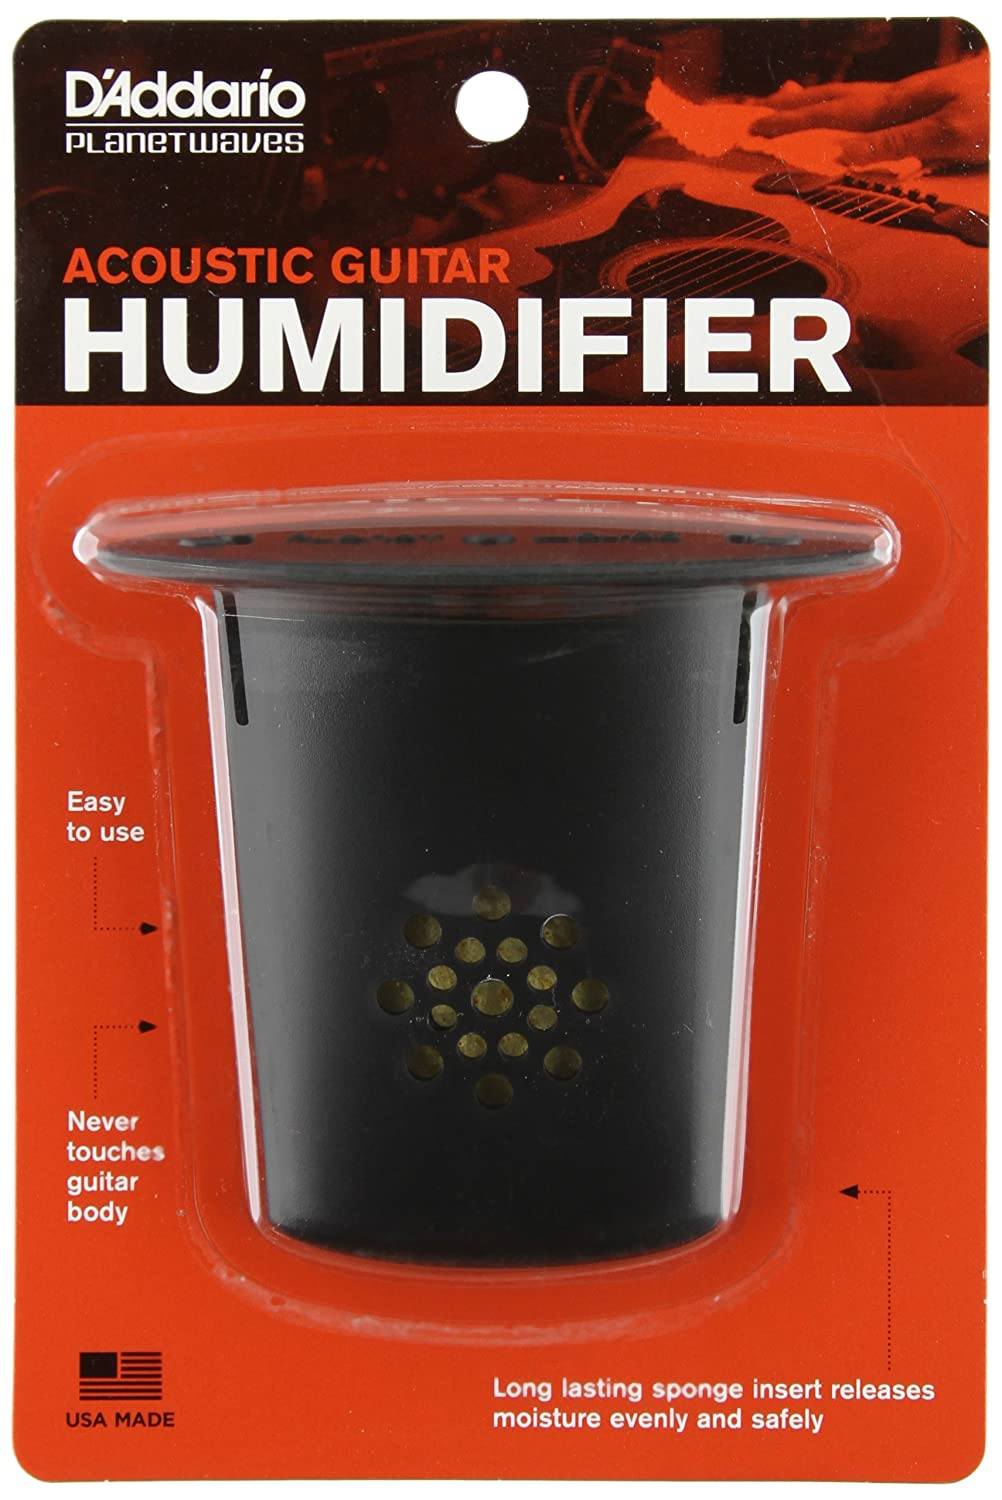 Planet Waves GH D'Addario Acoustic Guitar Humidifier Review